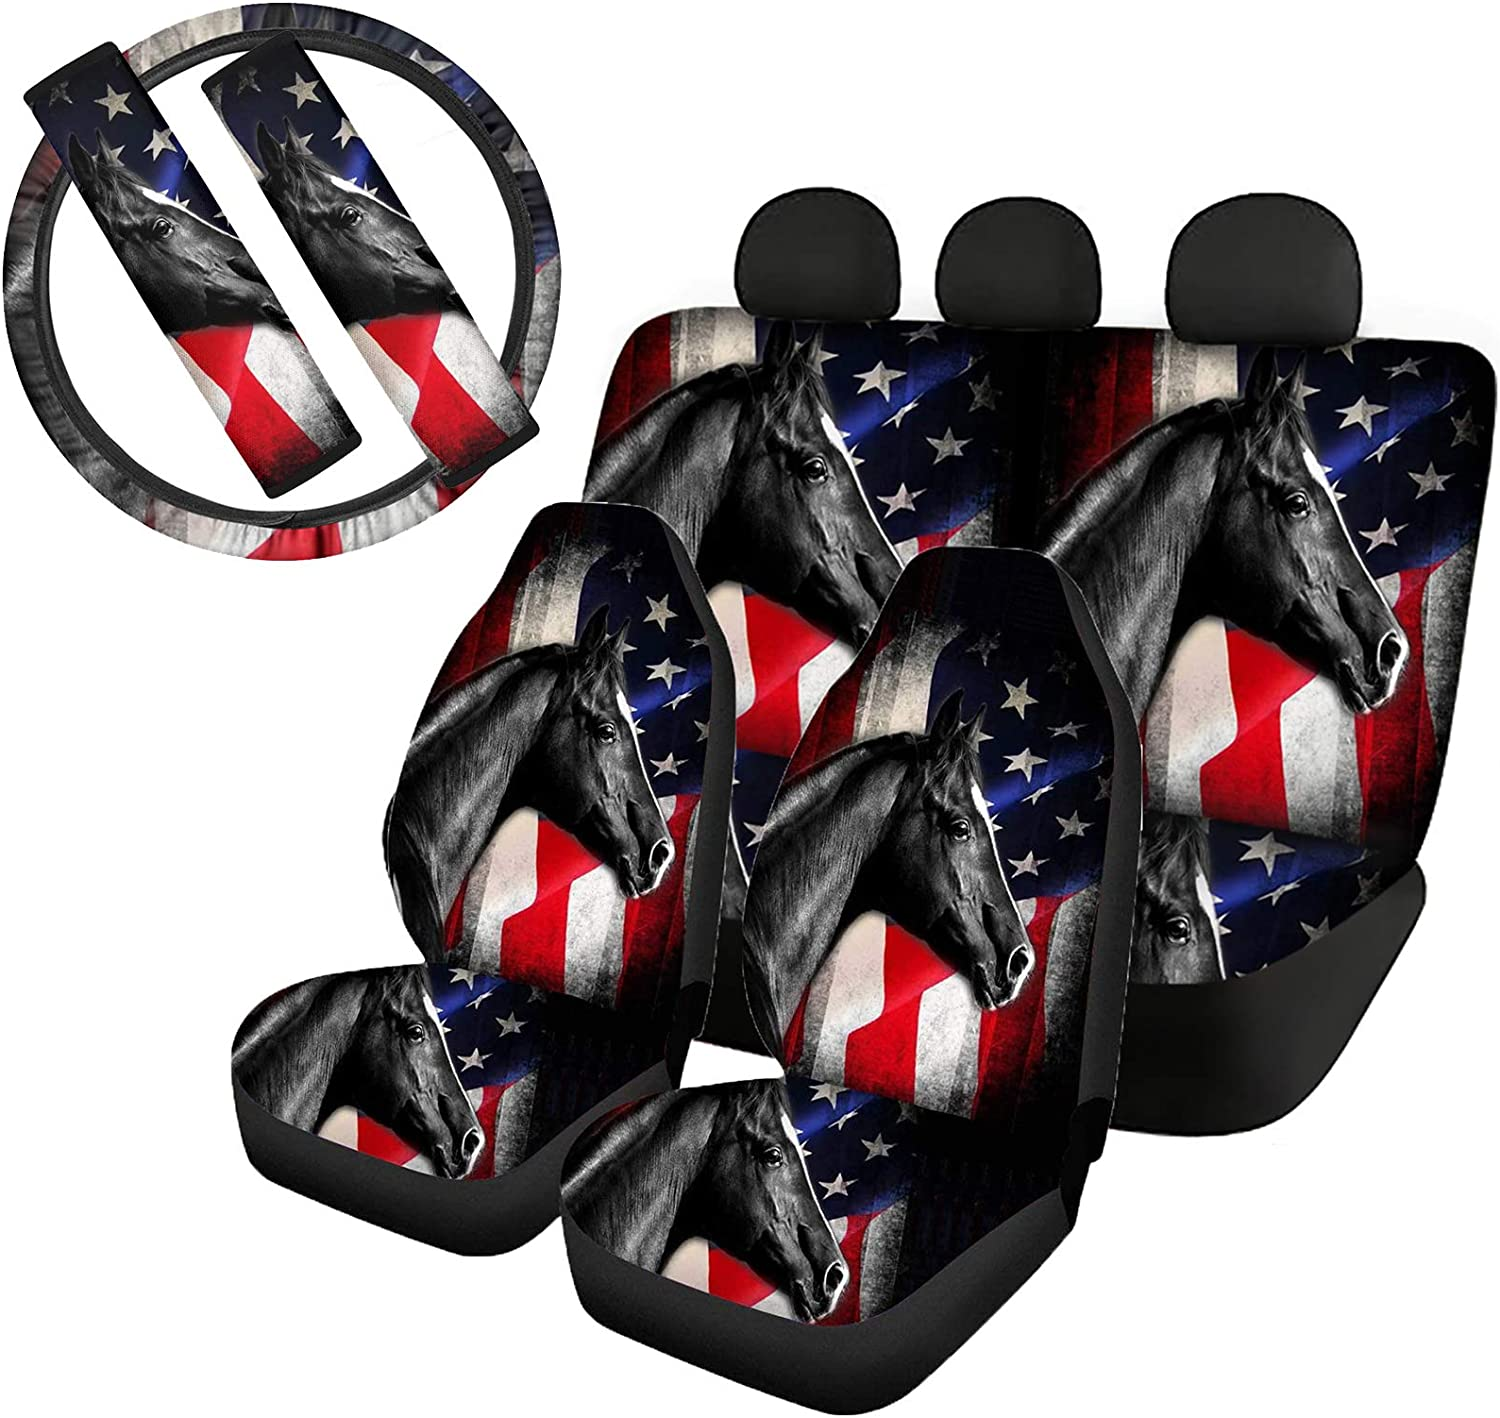 GePrint Black Horse Pattern Seat Cover Cushion for Truck Sedan Vans SUV Cars,USA Flag Stable Elastic Steering Wheel Cover with Soft Shoulder Strap Seatbelt Cover Full Set of 7 Gift